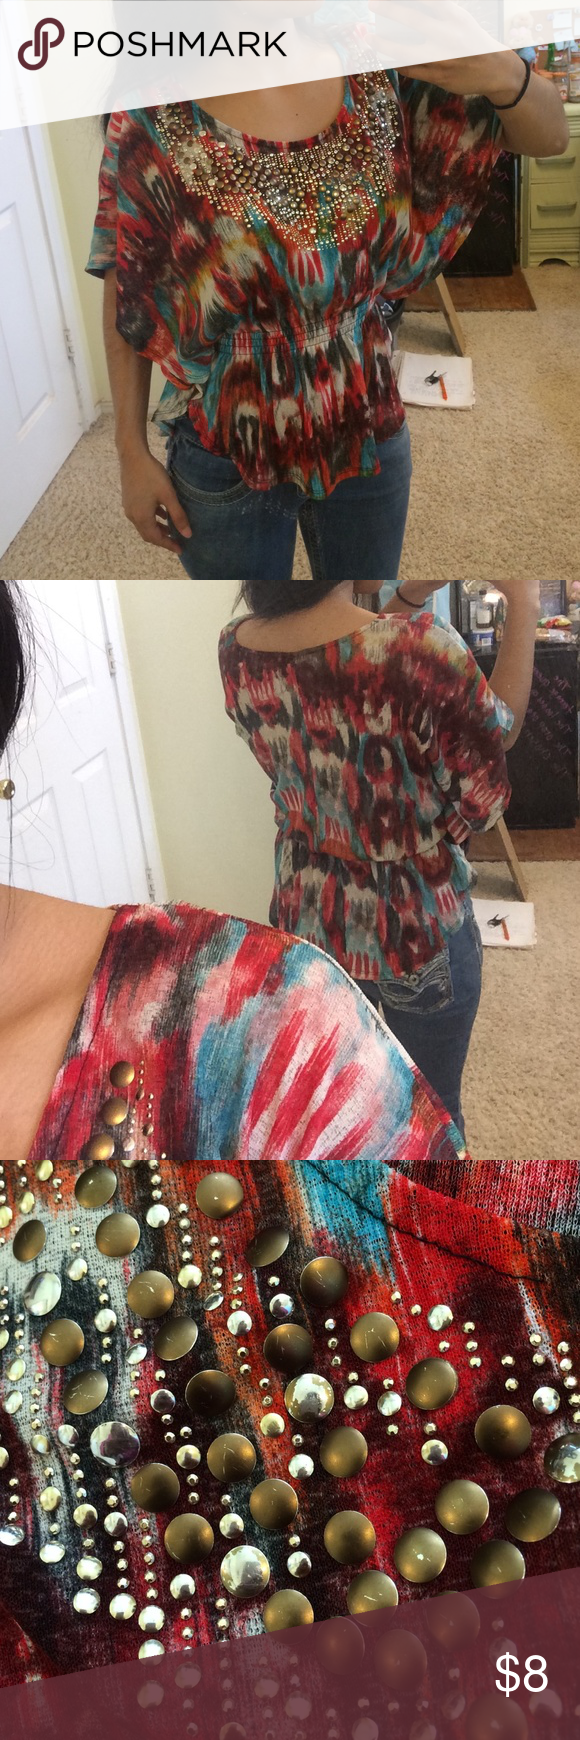 Colorful Top The paint on some beads is scratched off. The entire shirt is stretchy. Daytrip Tops Blouses